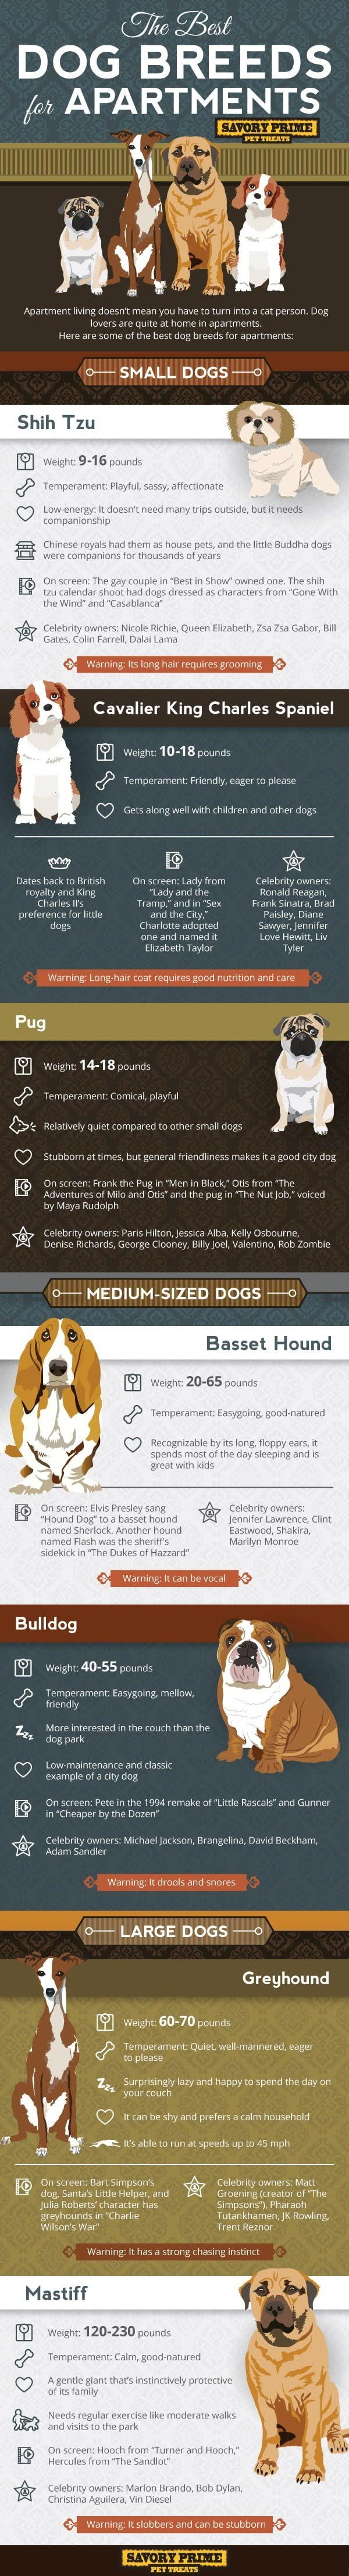 The Best Dog Breeds for Apartment Living | Savory Prime #infographic